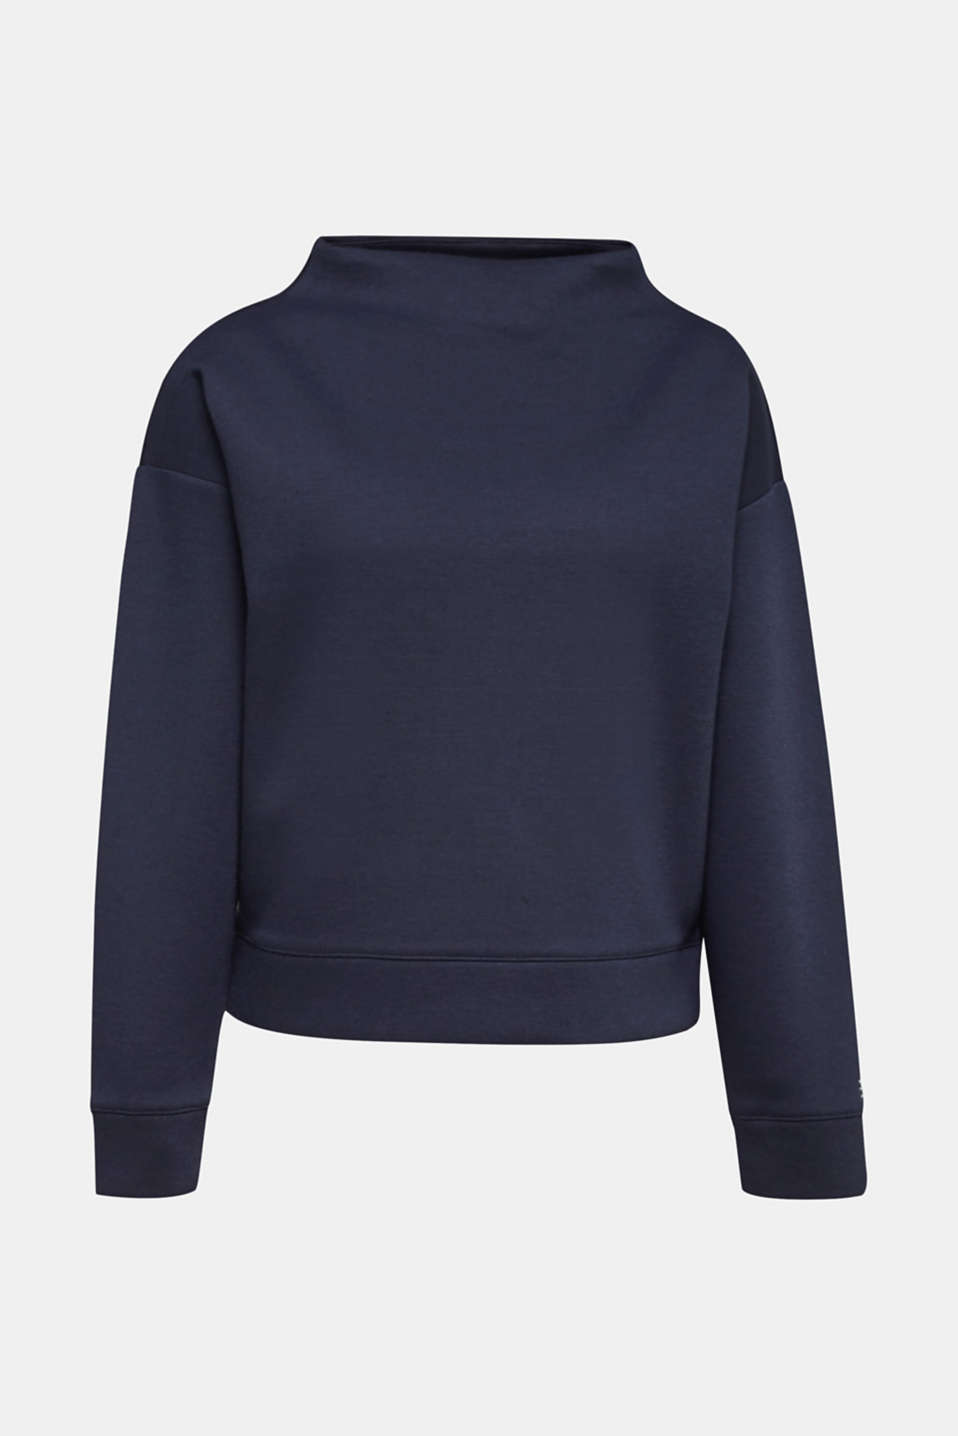 Compact sweatshirt with a stand-up collar, NAVY, detail image number 6